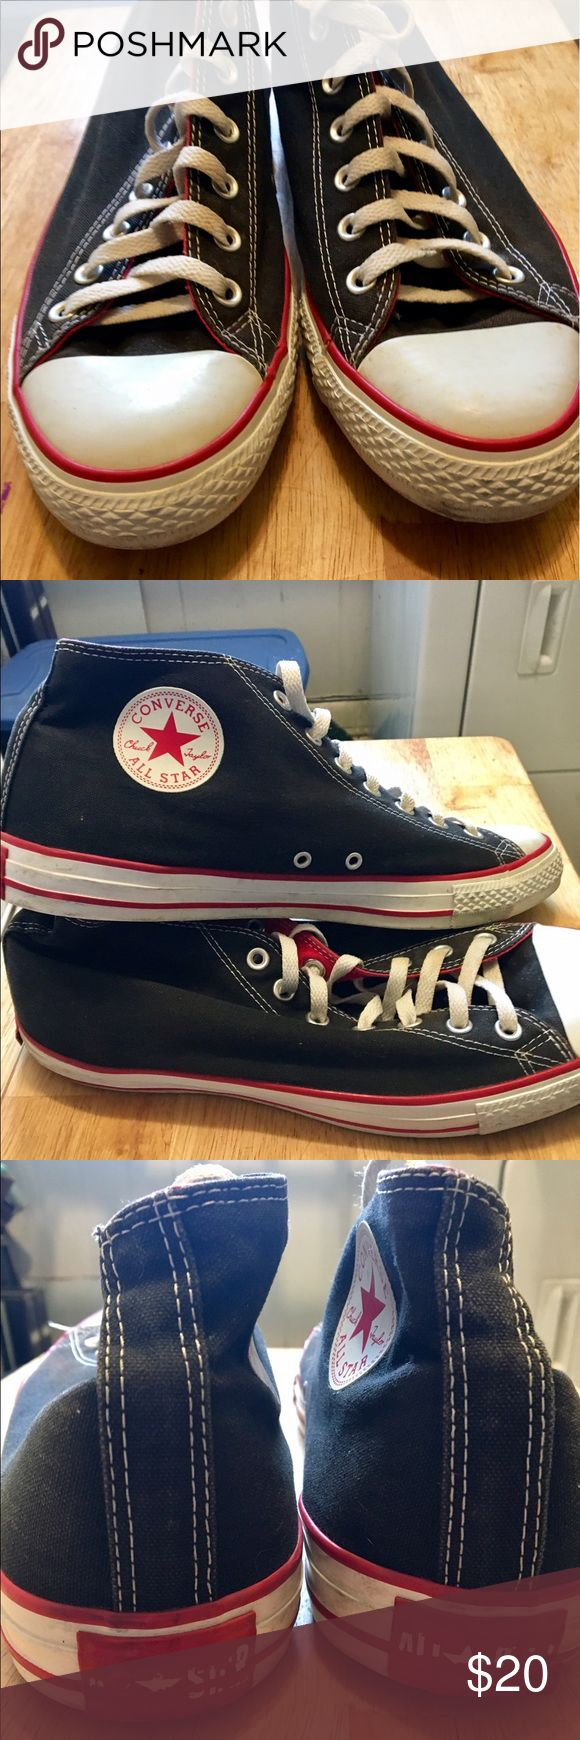 Converse Chuck Taylor Black/Red Mid-tops size 12 Converse Chuck Taylor Black/Red Mid-tops size 12 124101F Clean and good condition. See pictures for details Converse Shoes Sneakers